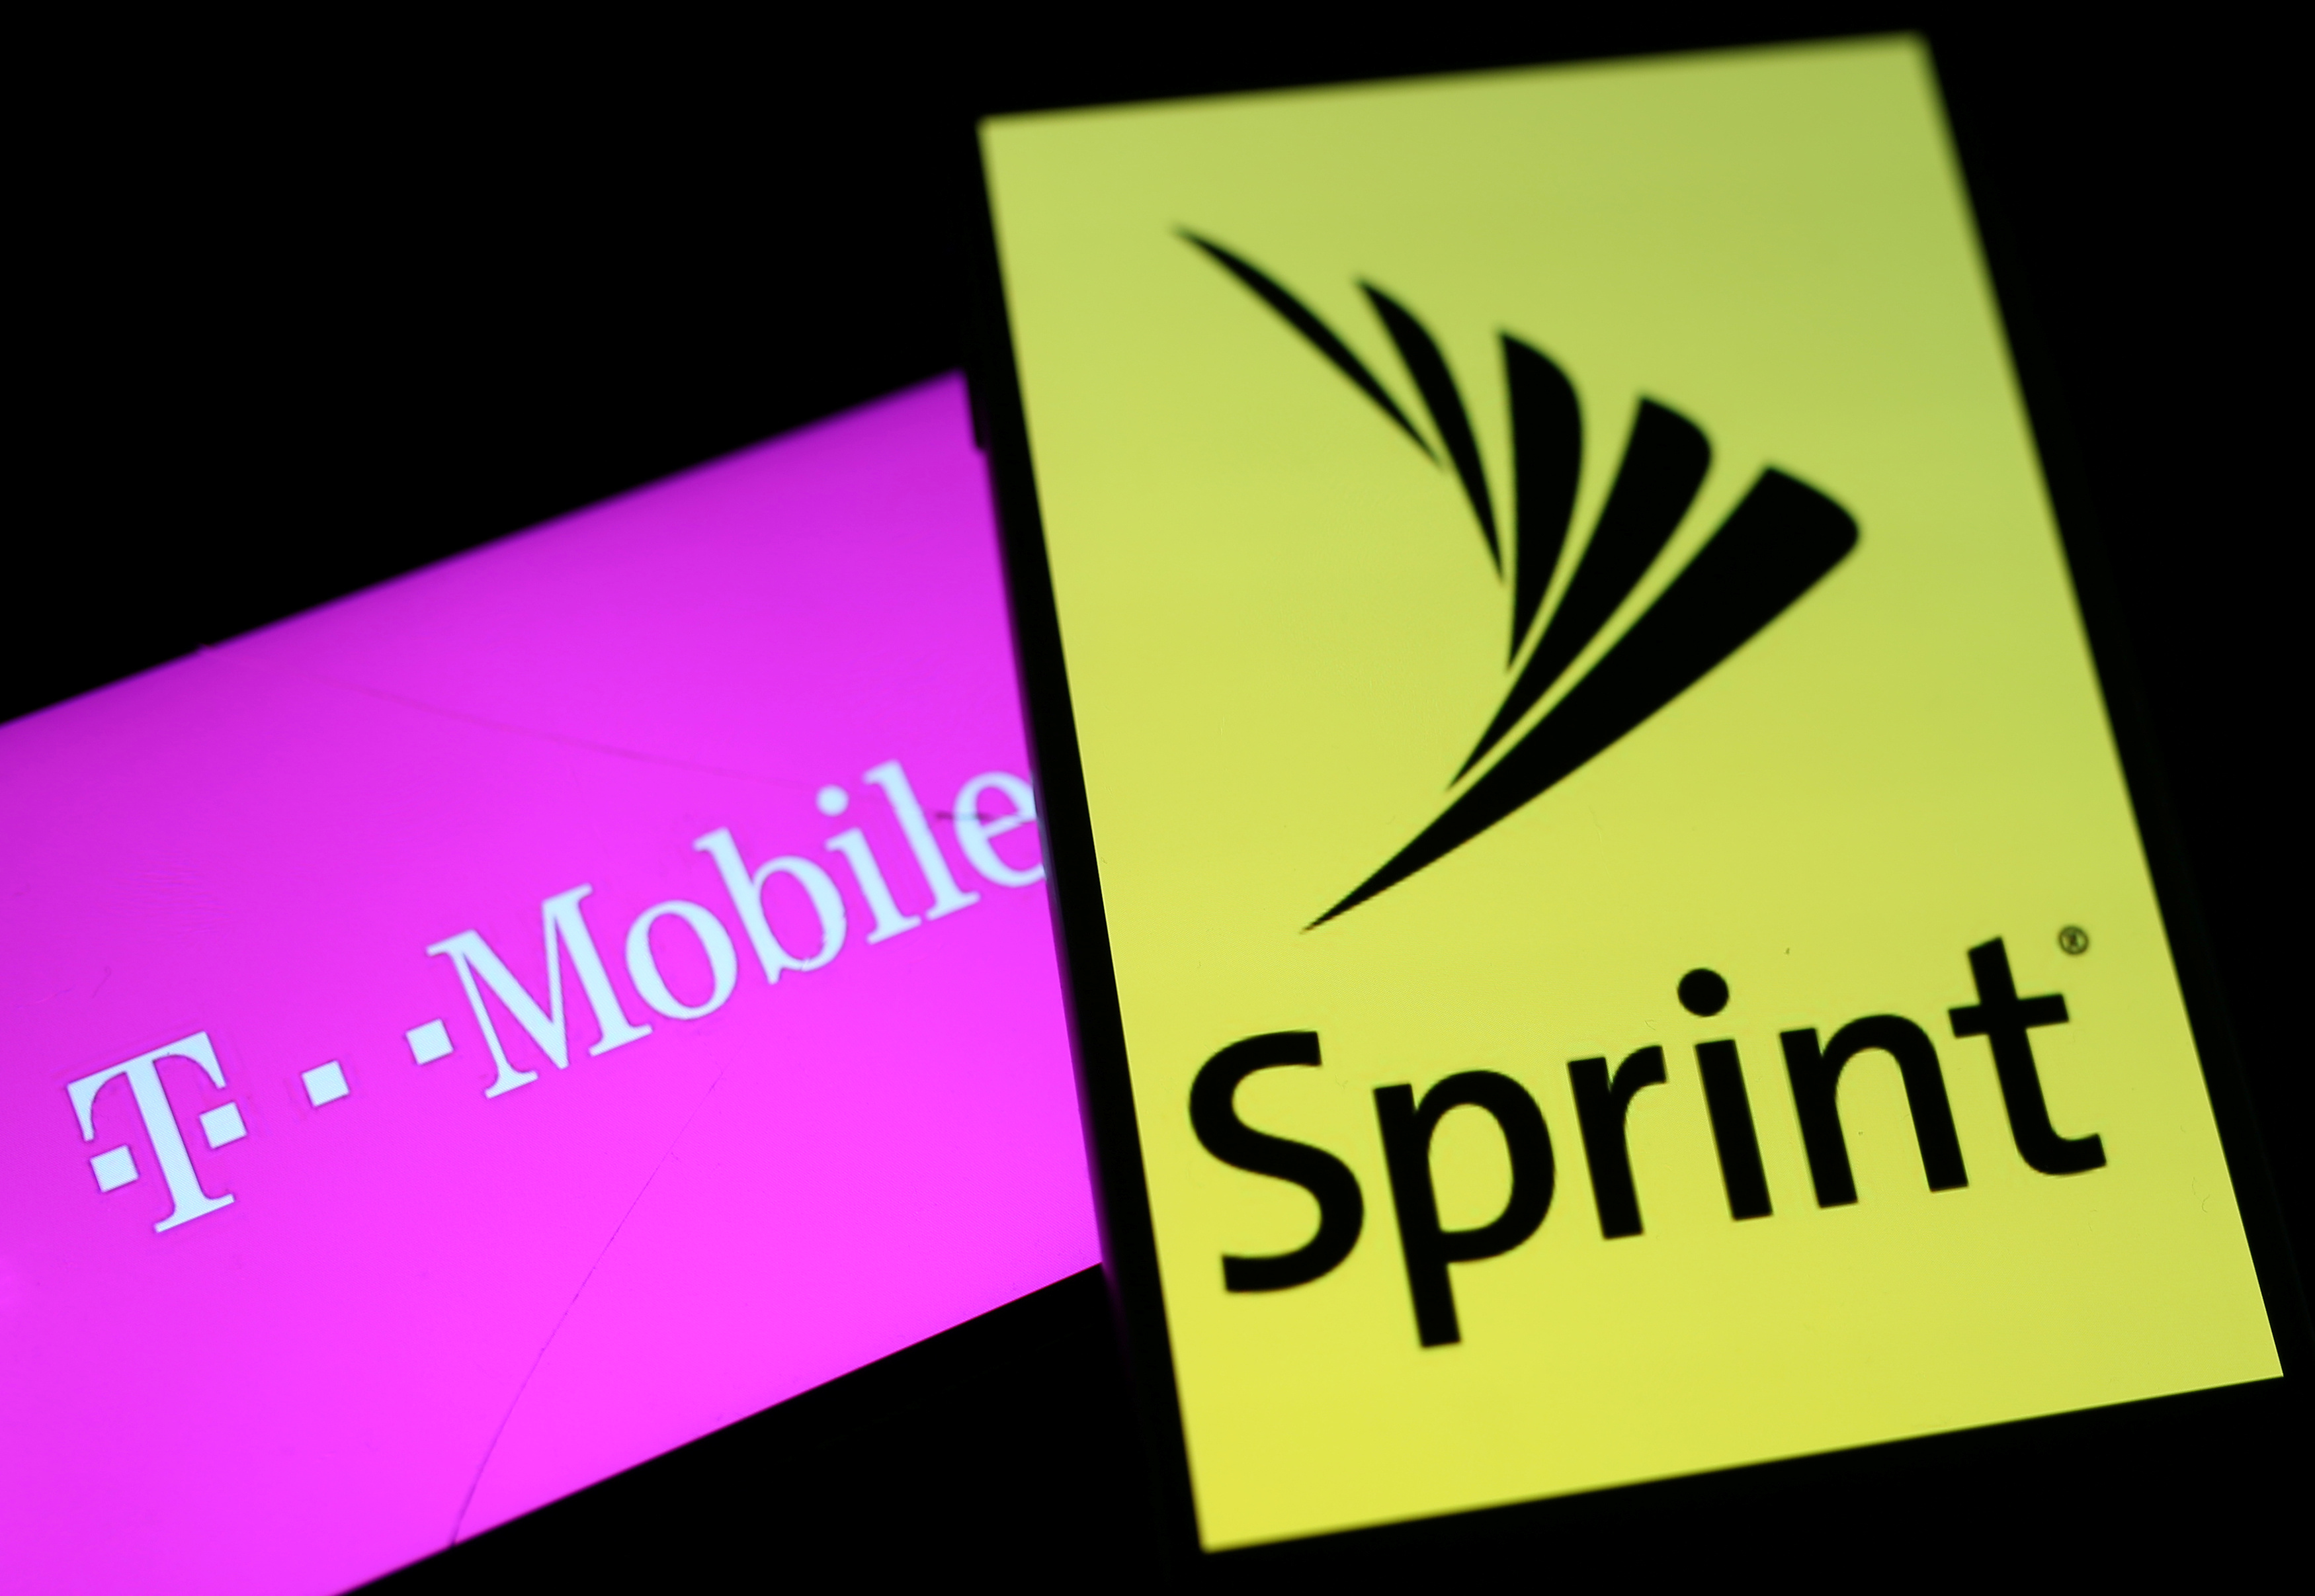 Mobile, Sprint to merge in $26 billion all-stock deal